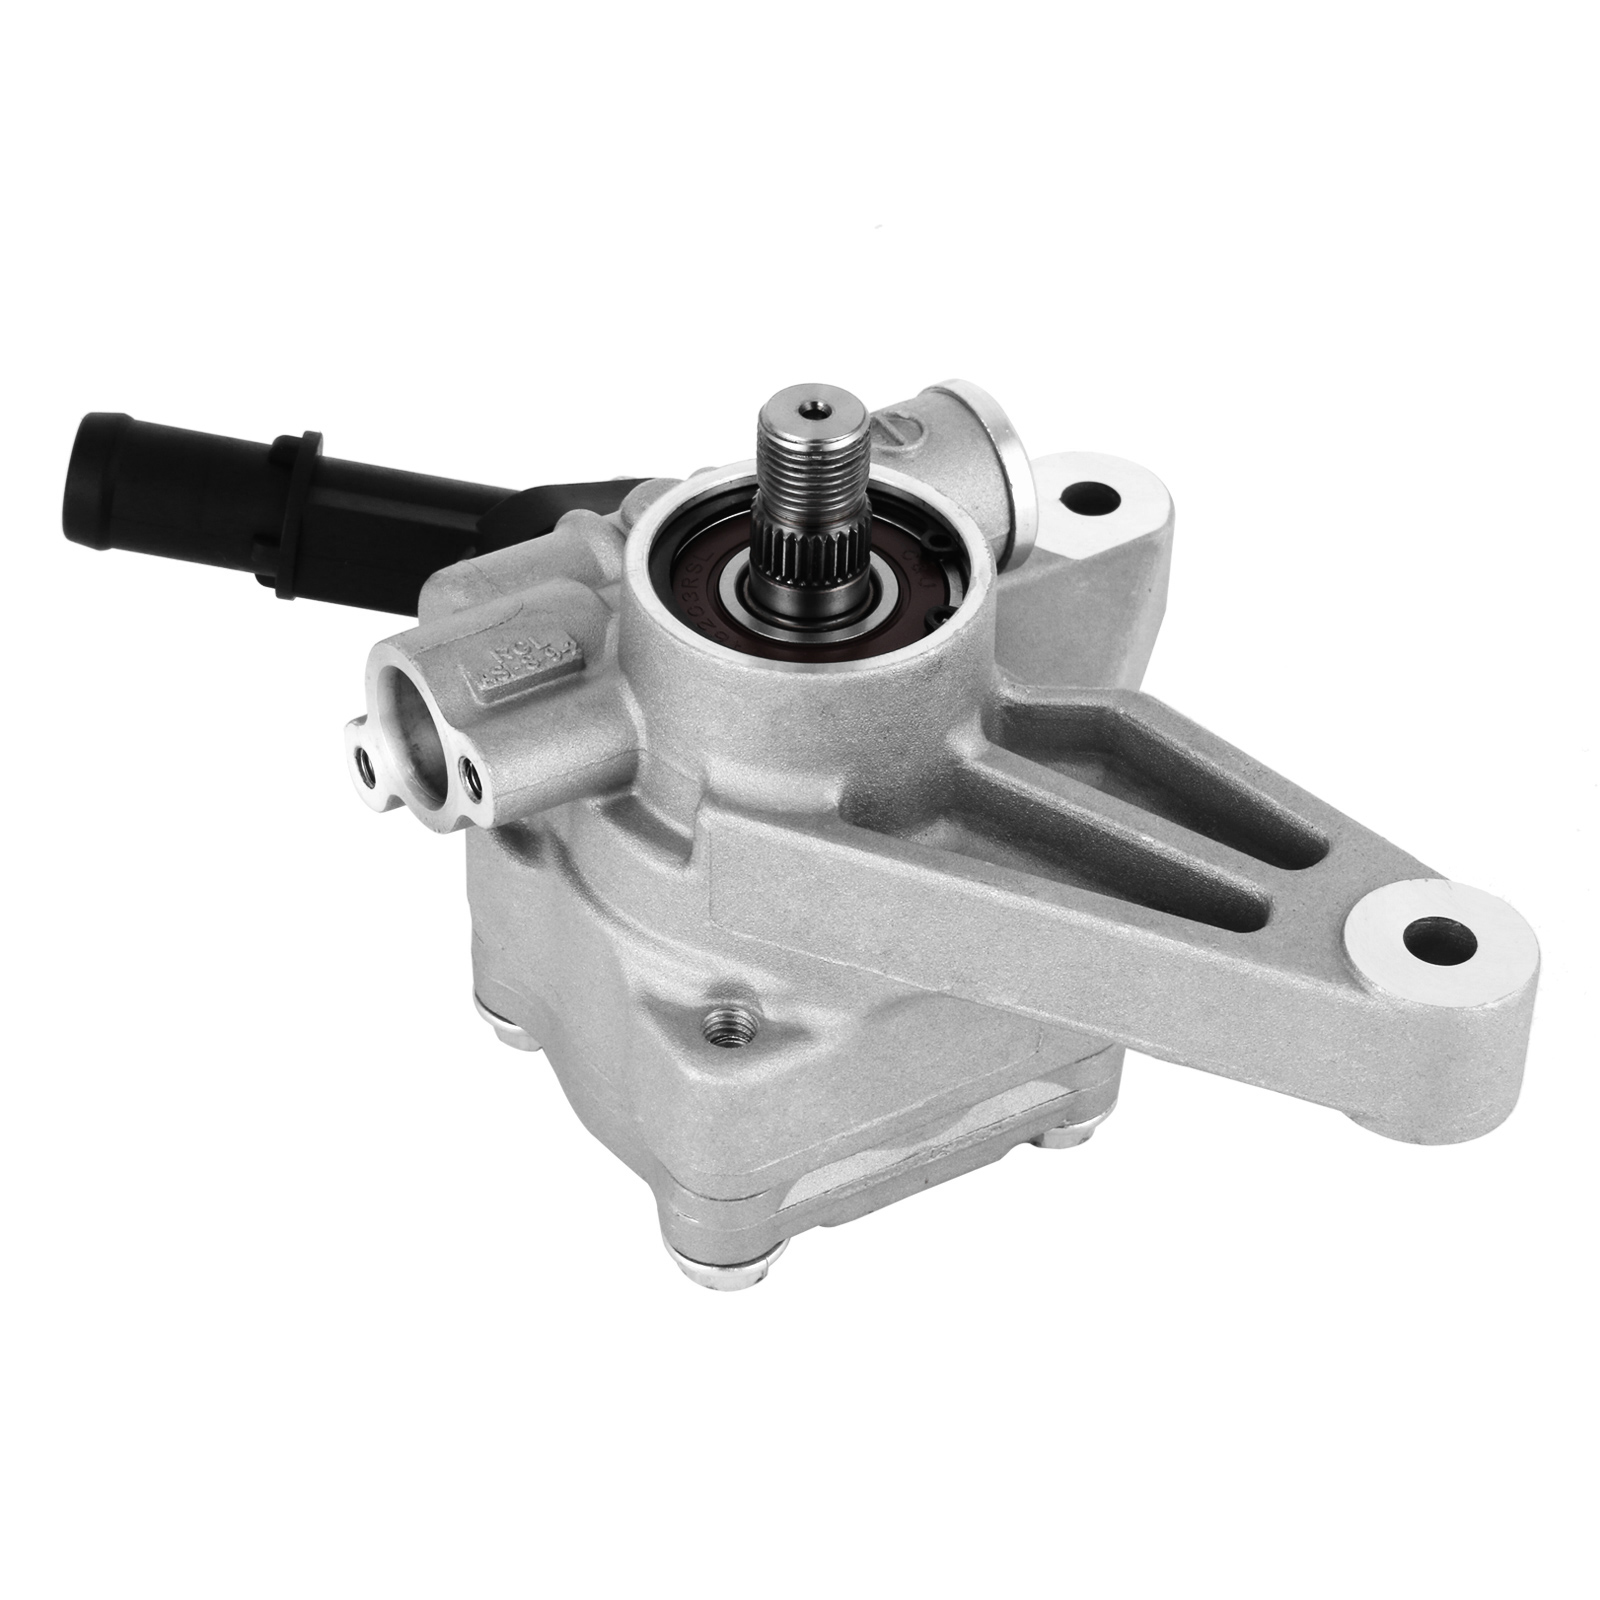 Power Steering Pump For 2003-2013 Honda Odyssey Acura MDX